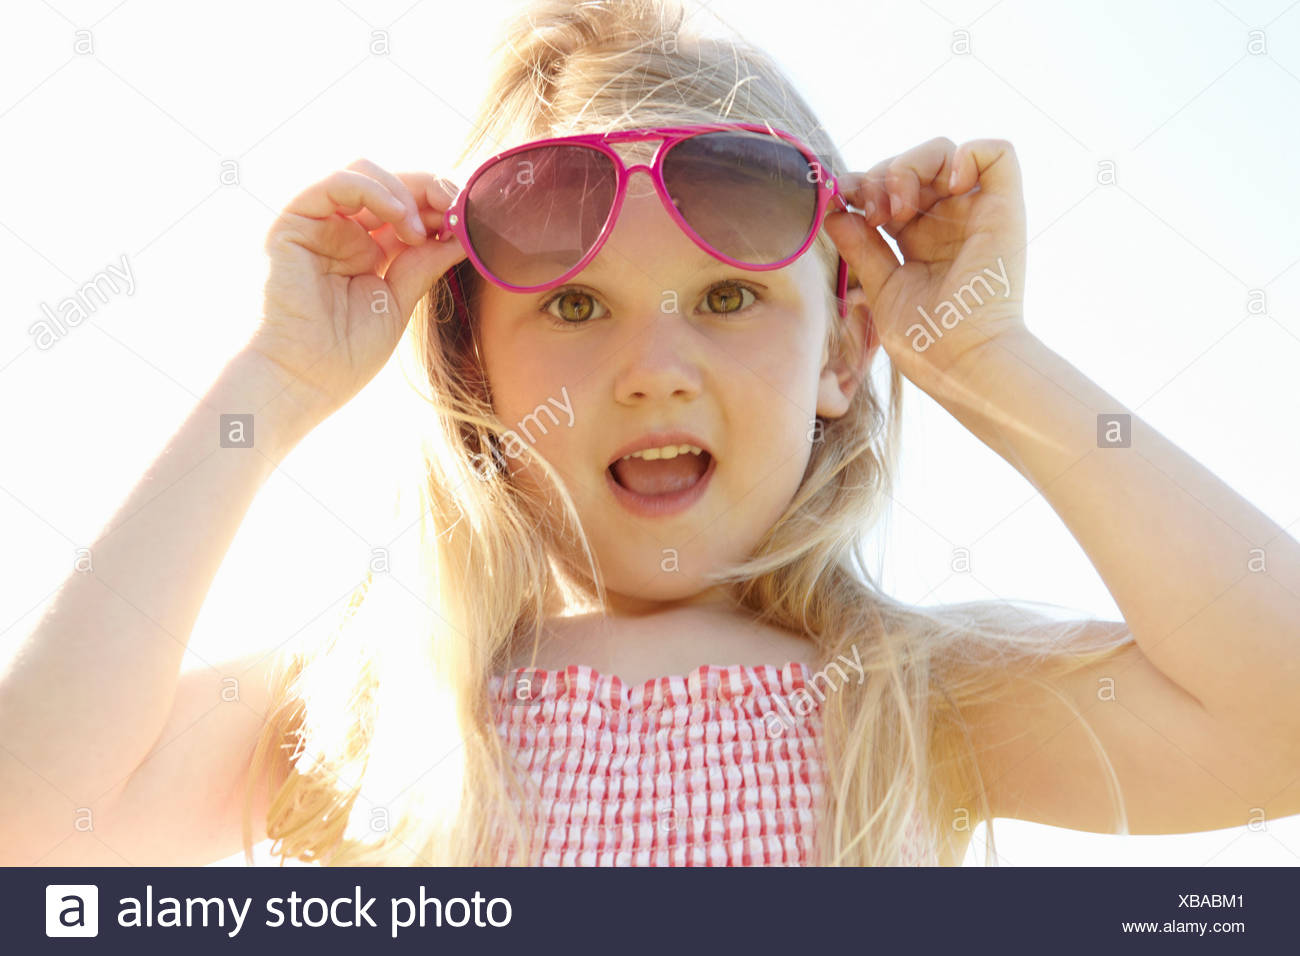 Child putting on sun glasses on hot sunny day - Stock Image